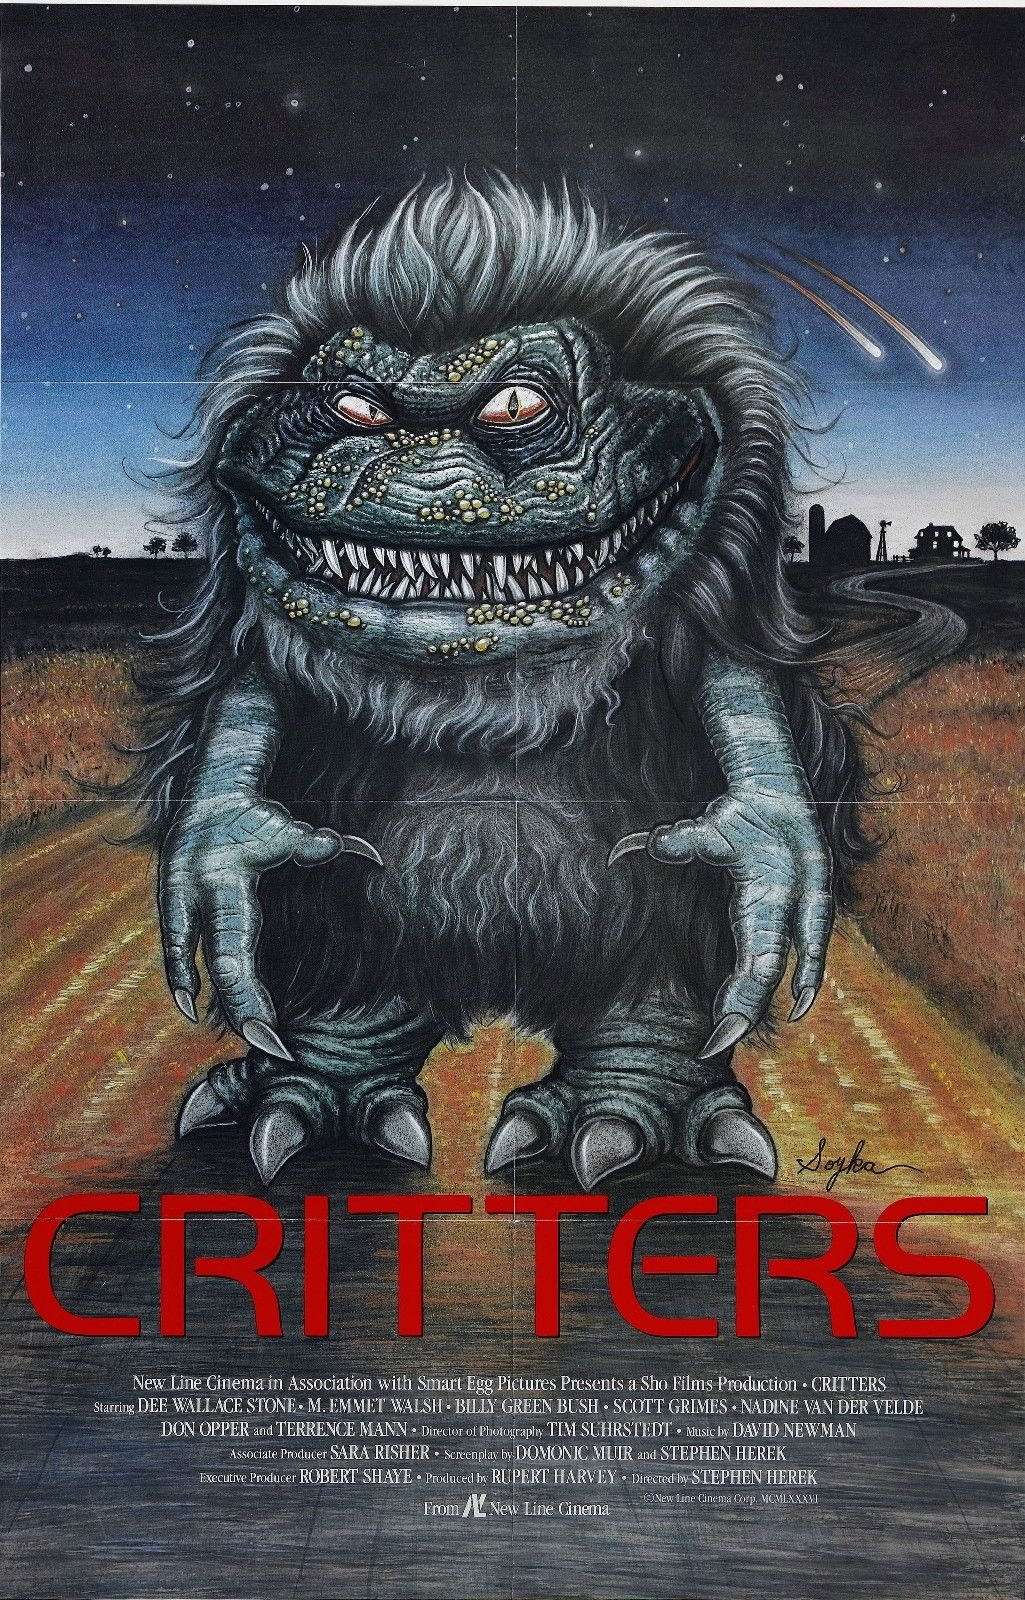 72342-CRITTERS-Movie-Horror-80-039-s-Sci-Fi-FRAMED-CANVAS-PRINT-Toile